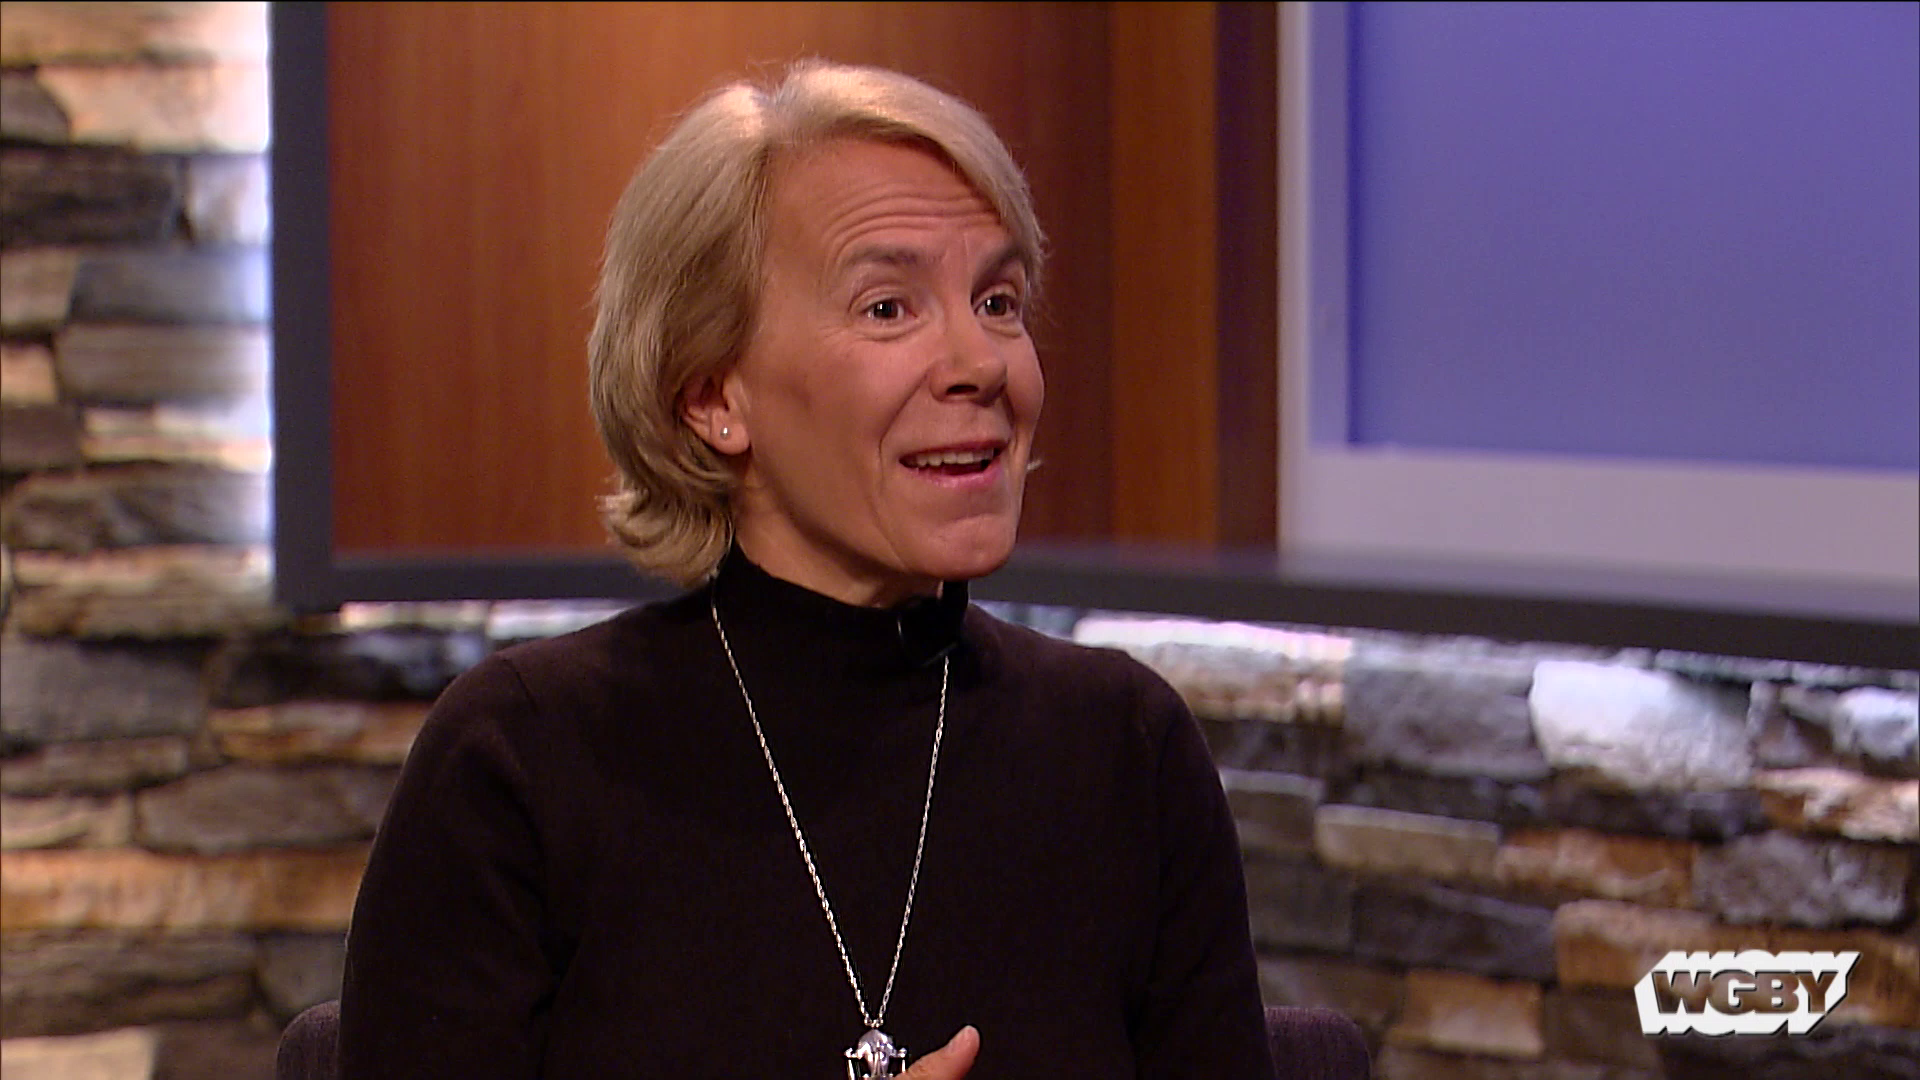 Incoming Hampshire College President Miriam Nelson is a prominent health and nutrition scholar, scientist, professor, administrator, and government policy adviser. She discusses her career and her vision for the future of the liberal arts college.